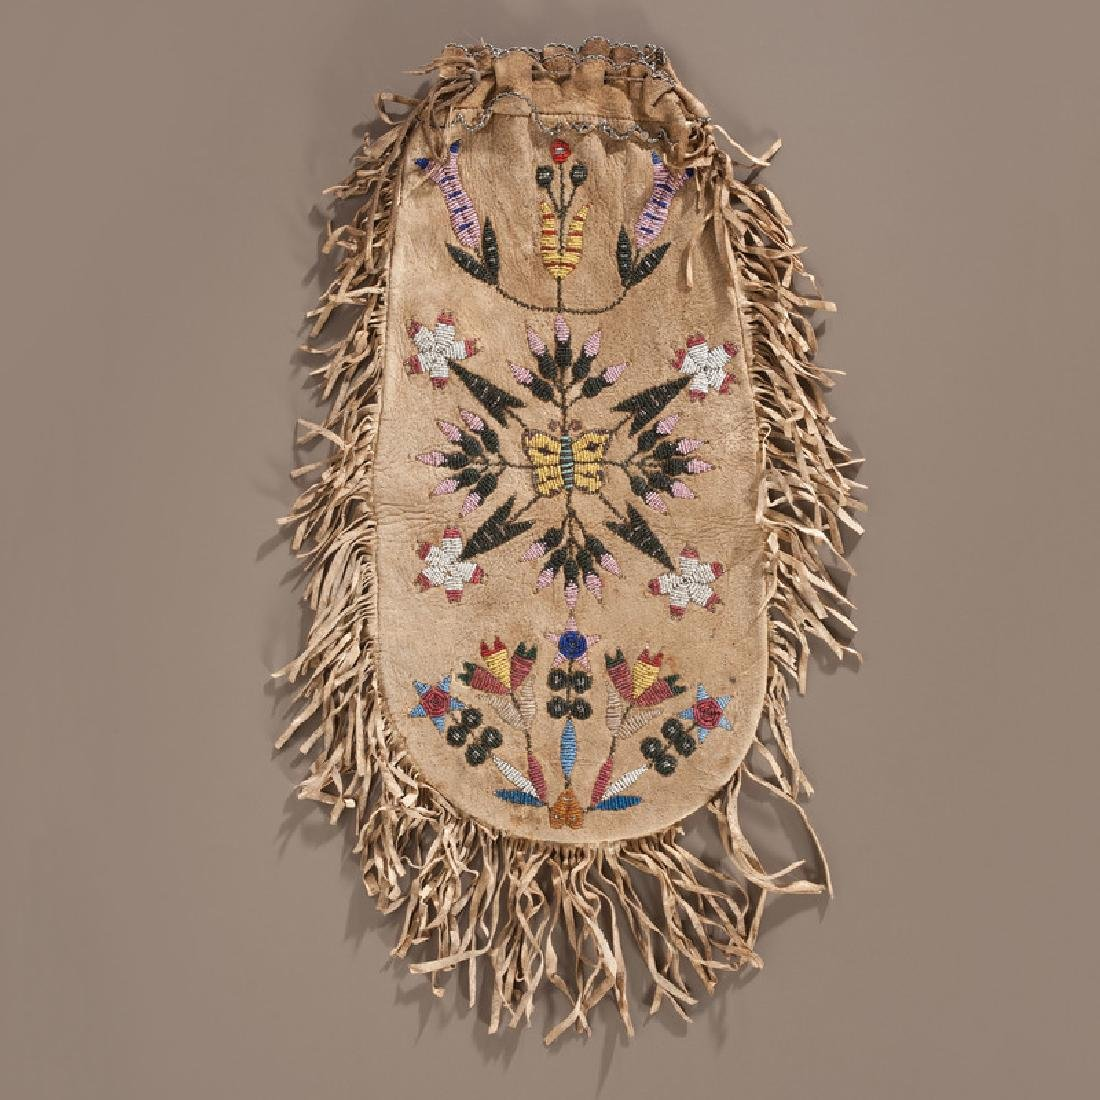 Santee Sioux Beaded Hide Pouch, Collected by Gustav